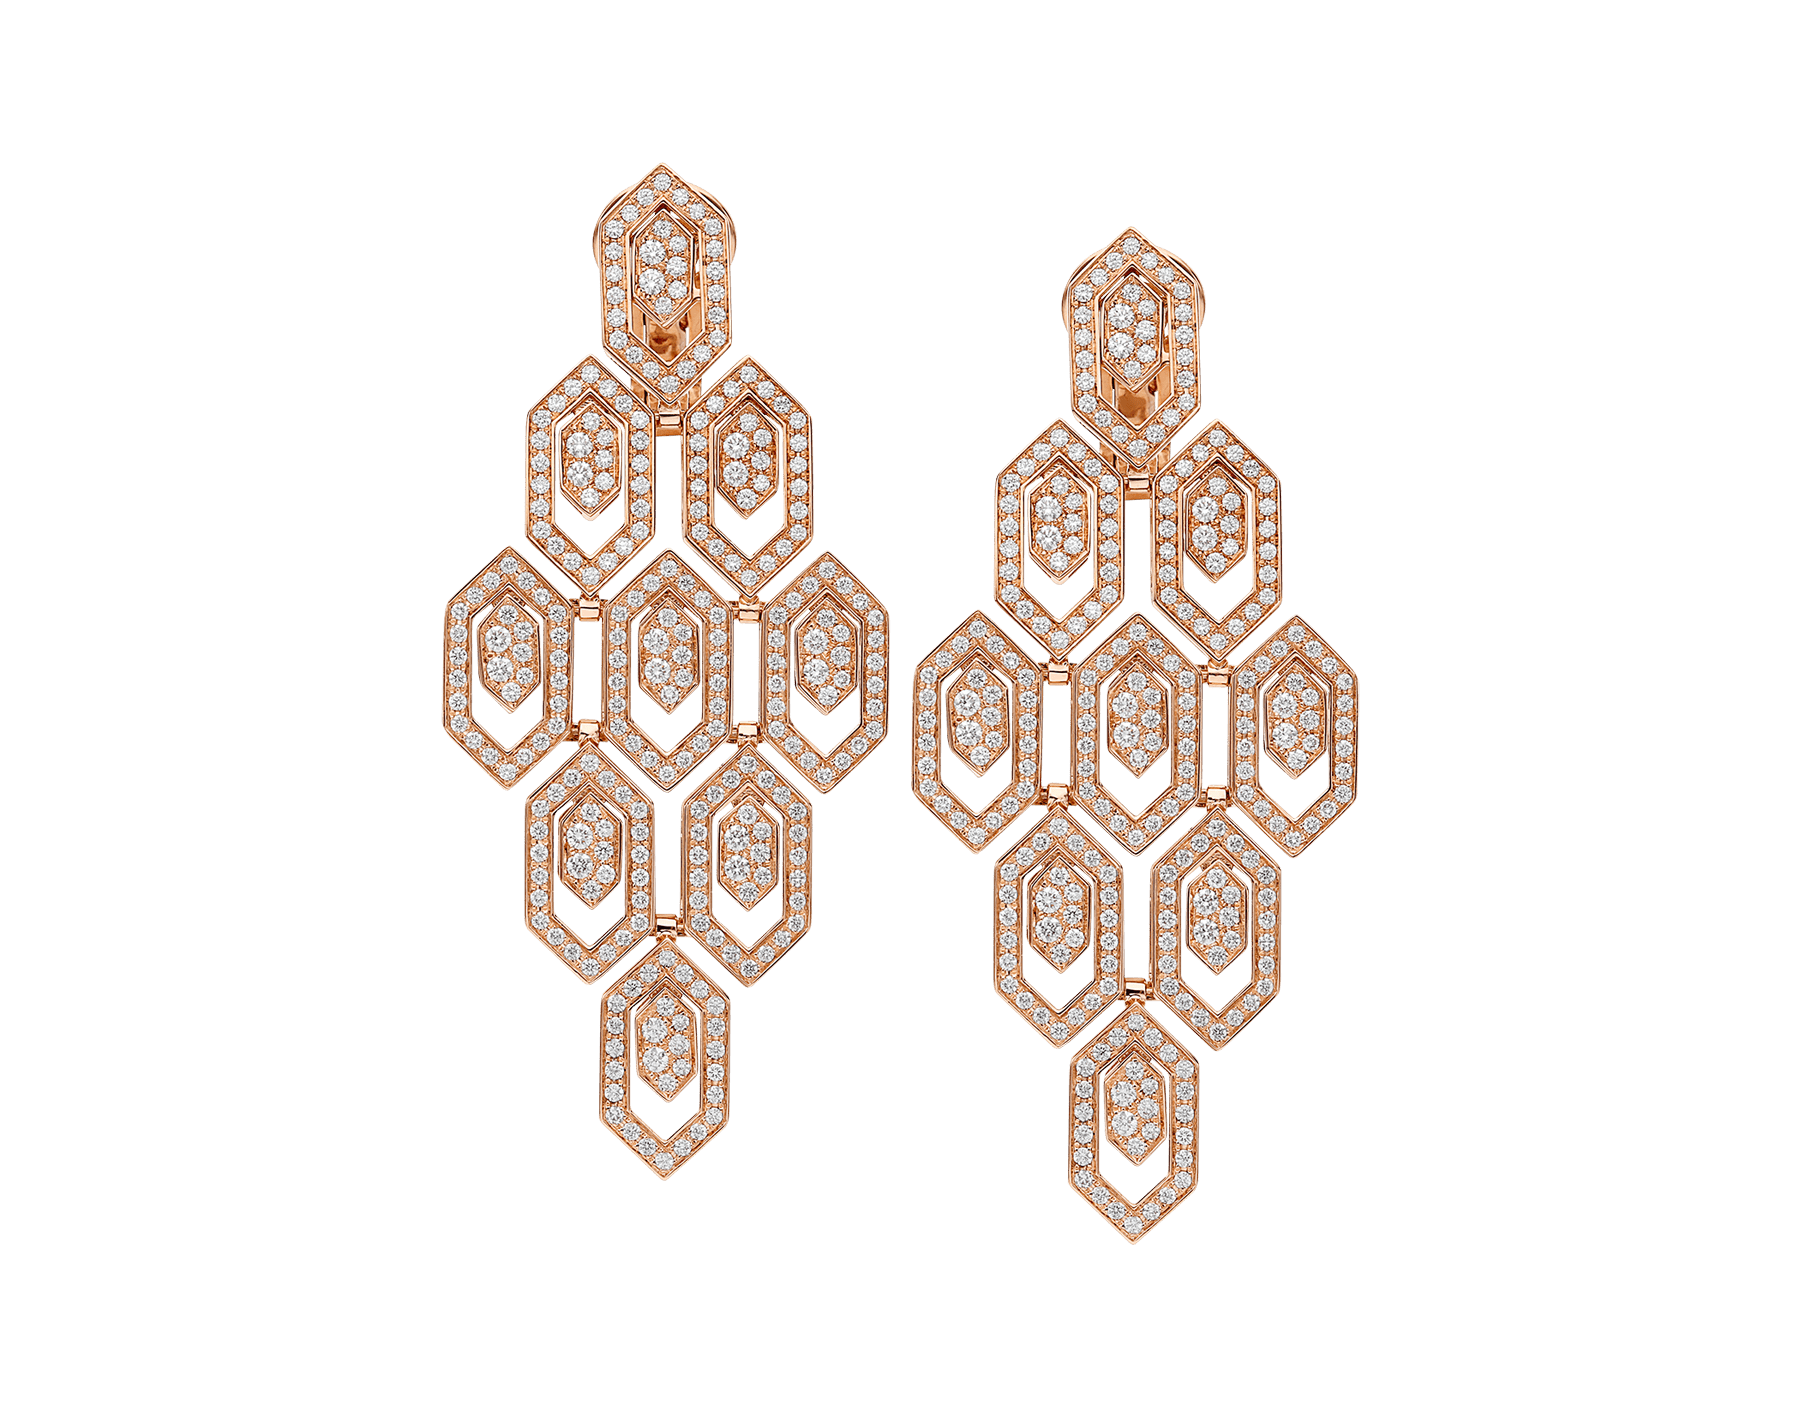 Serpenti 18 kt rose gold earrings set with pavé diamonds (2.18 ct) 356507 image 1